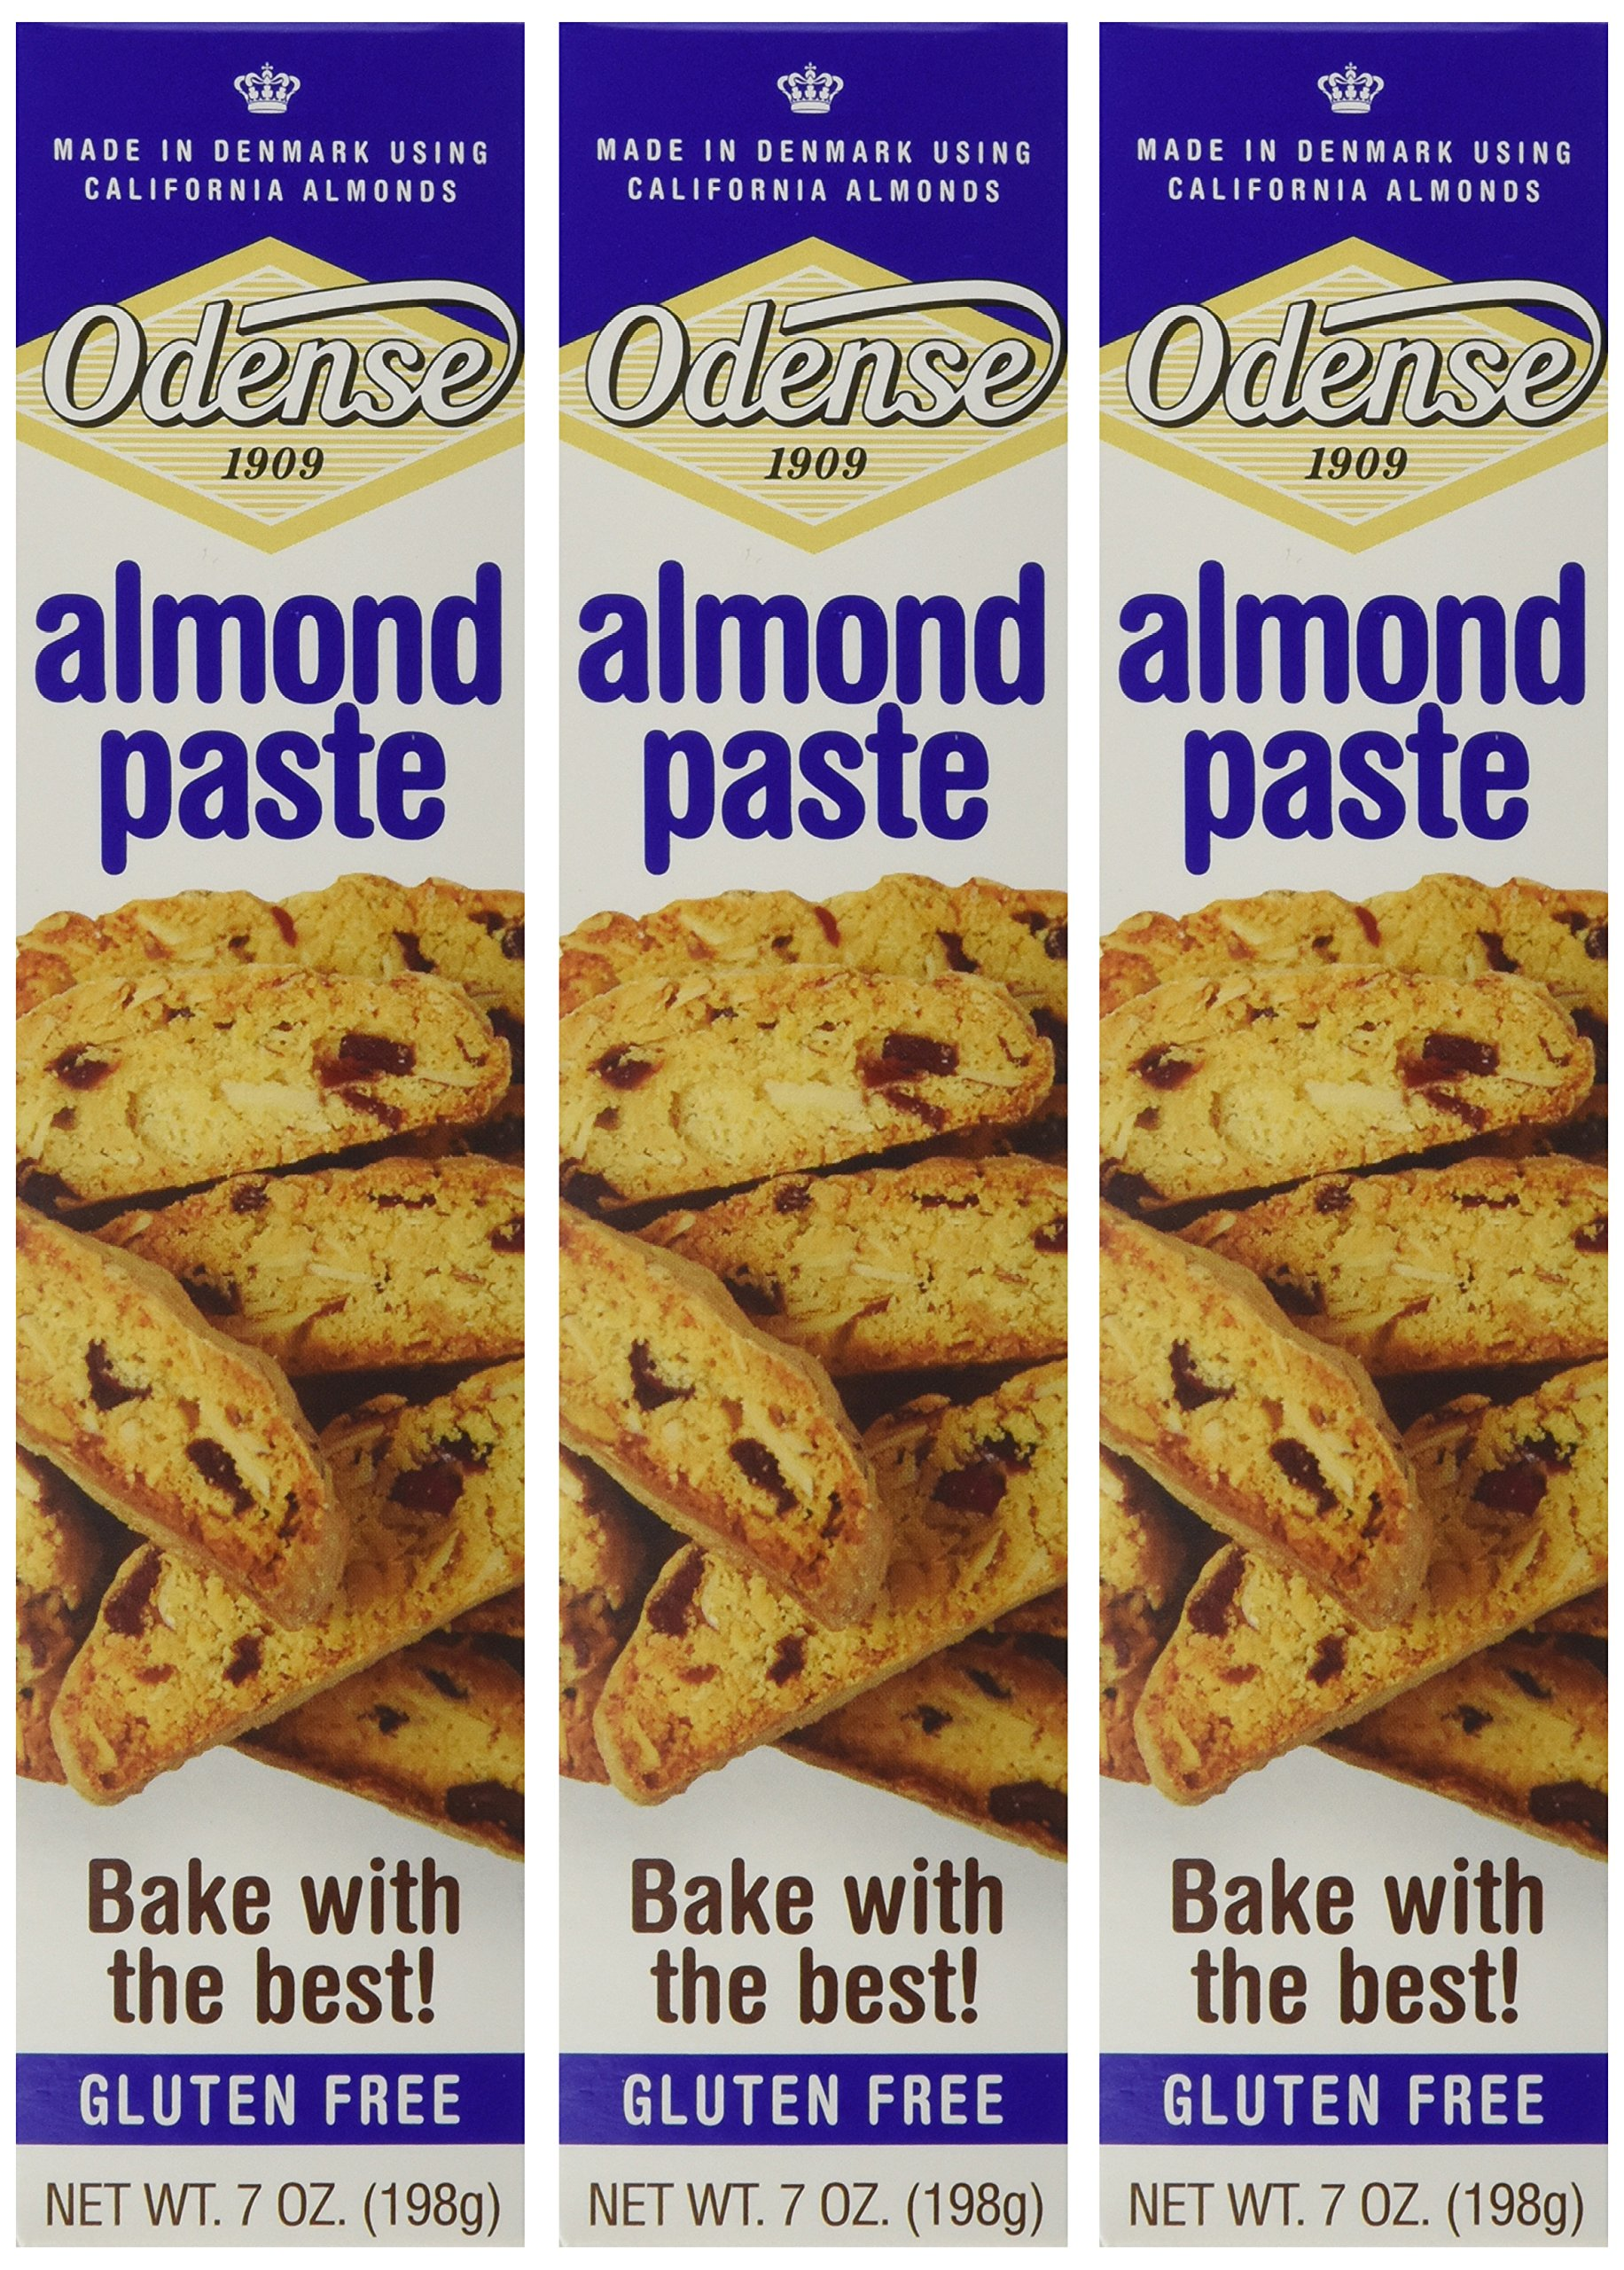 Odense Almond Paste - 3 Pack Value Bundle